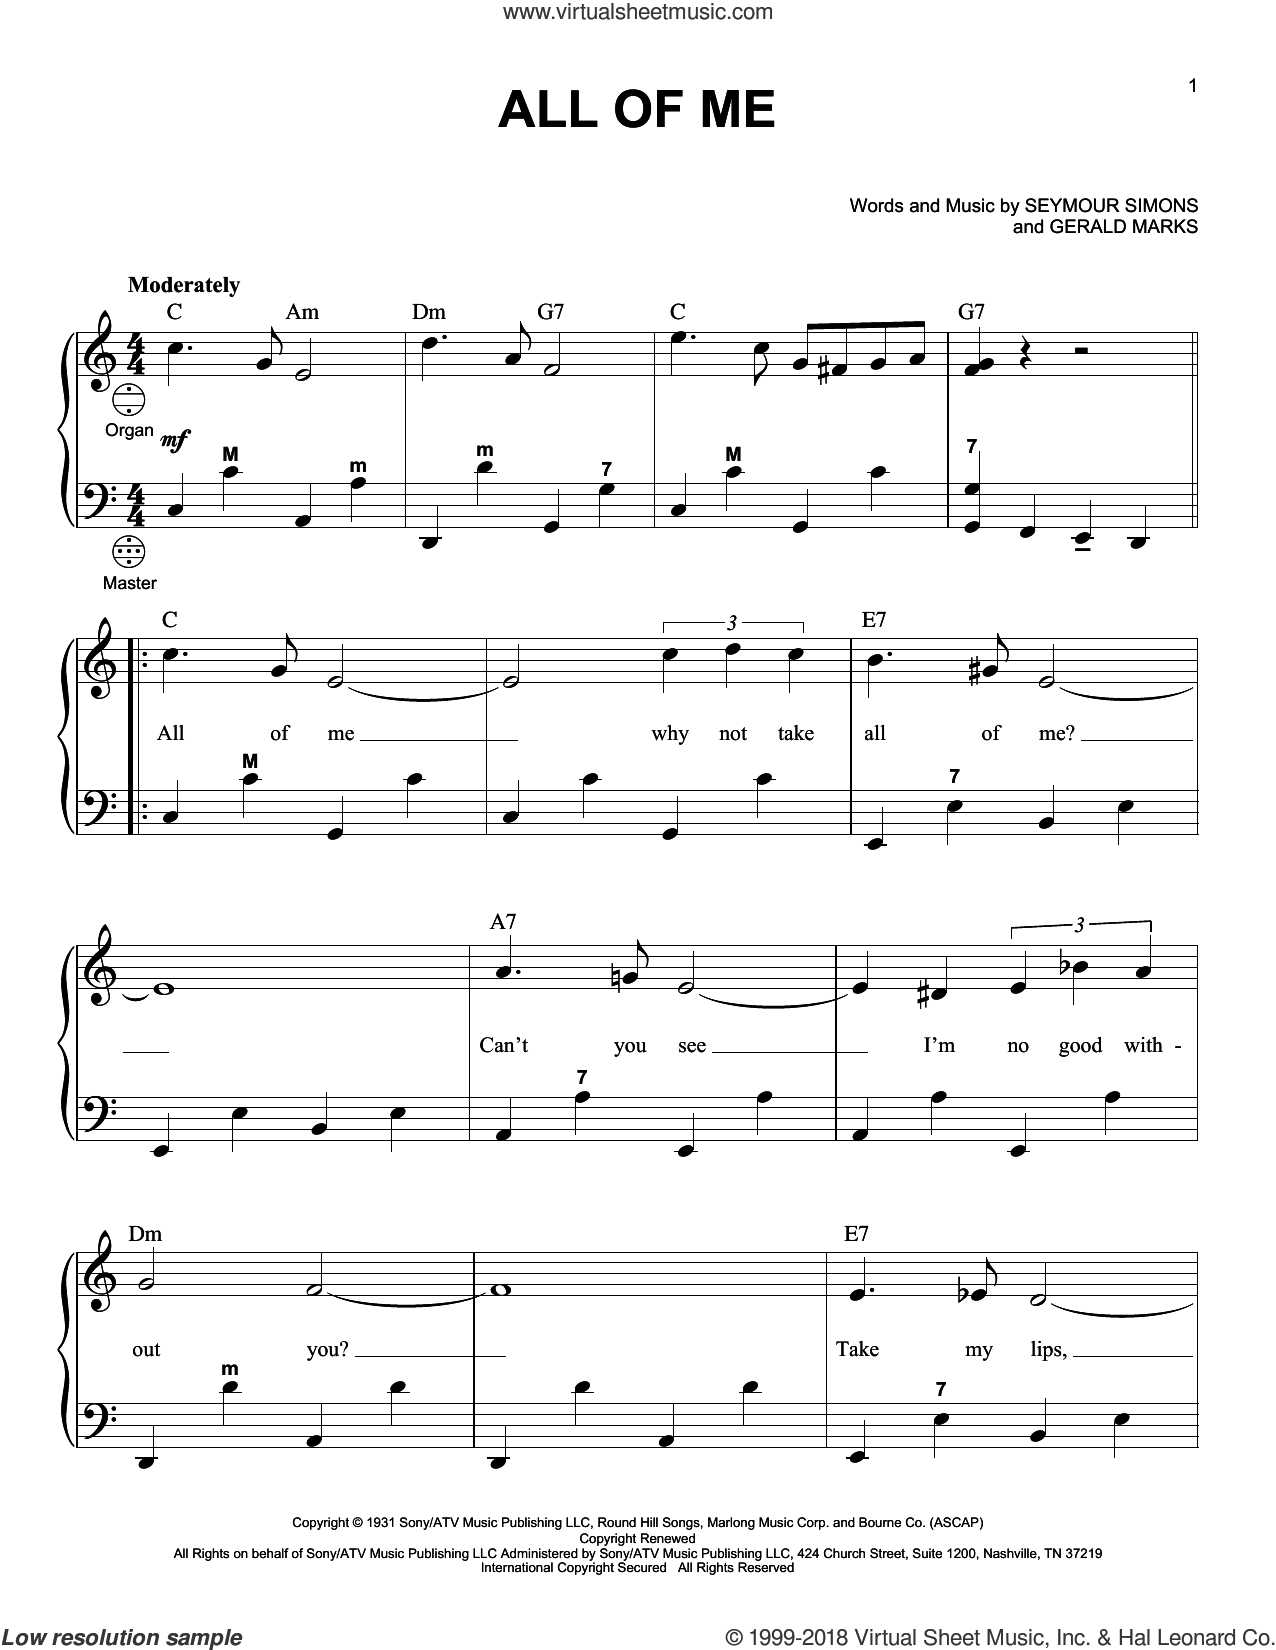 Simons - All Of Me sheet music for accordion [PDF-interactive] in